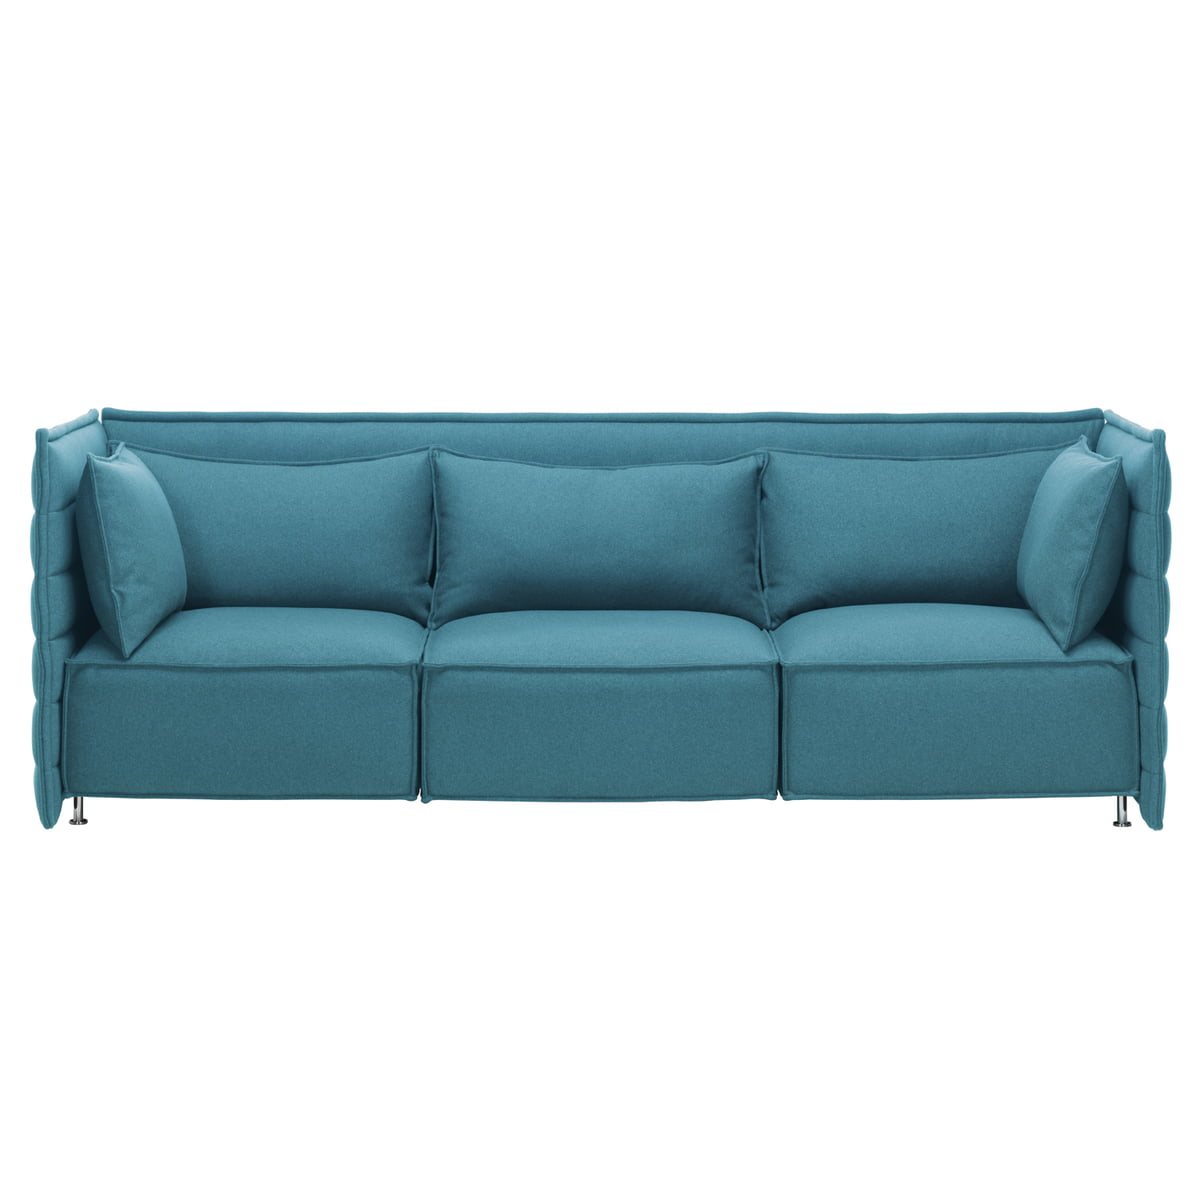 alcove plume sofa by vitra in the shop. Black Bedroom Furniture Sets. Home Design Ideas